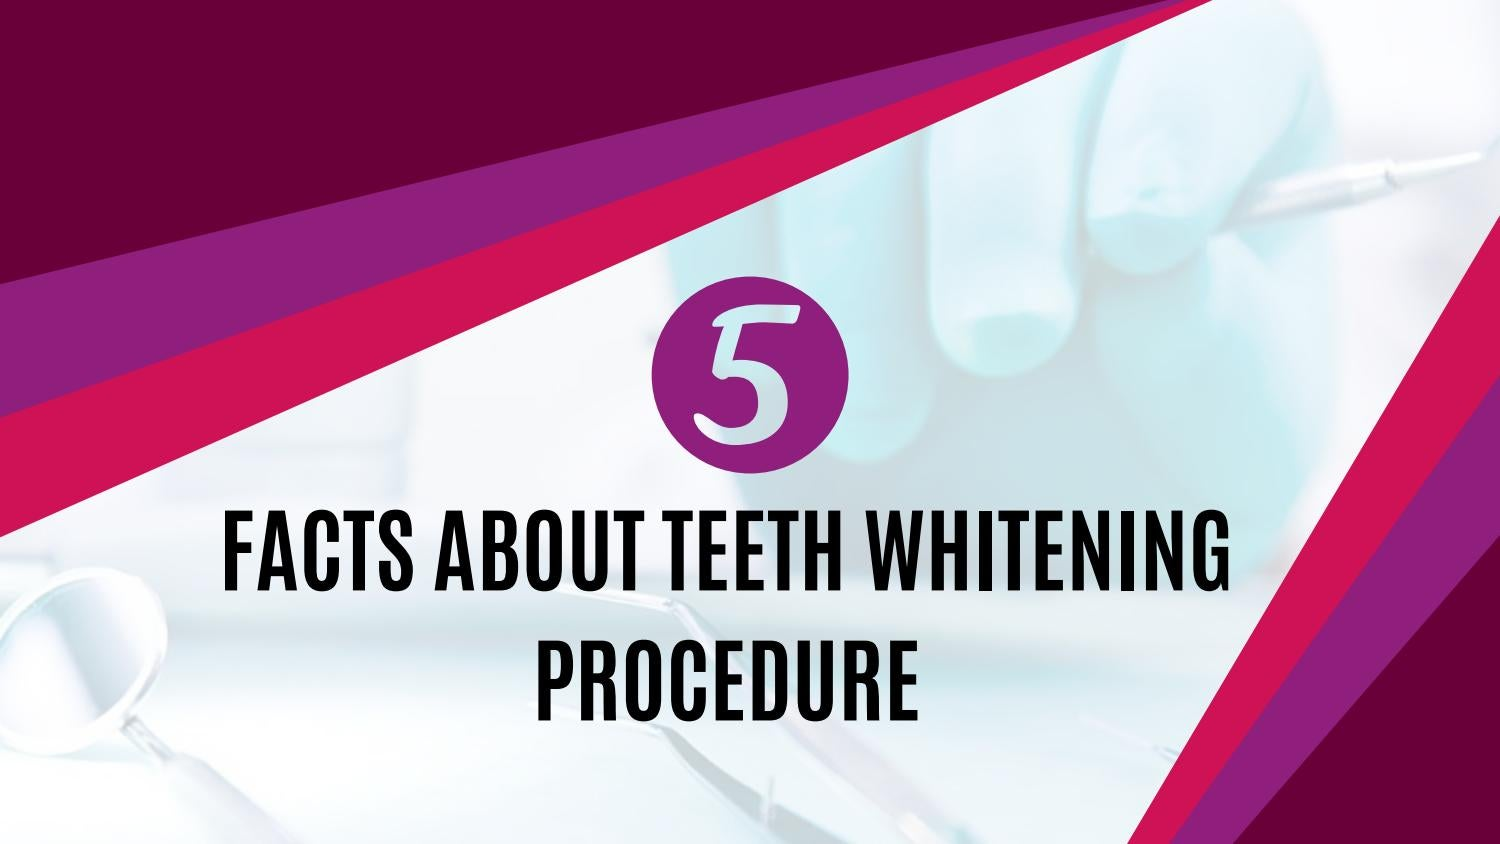 5 Facts About Teeth Whitening Procedure